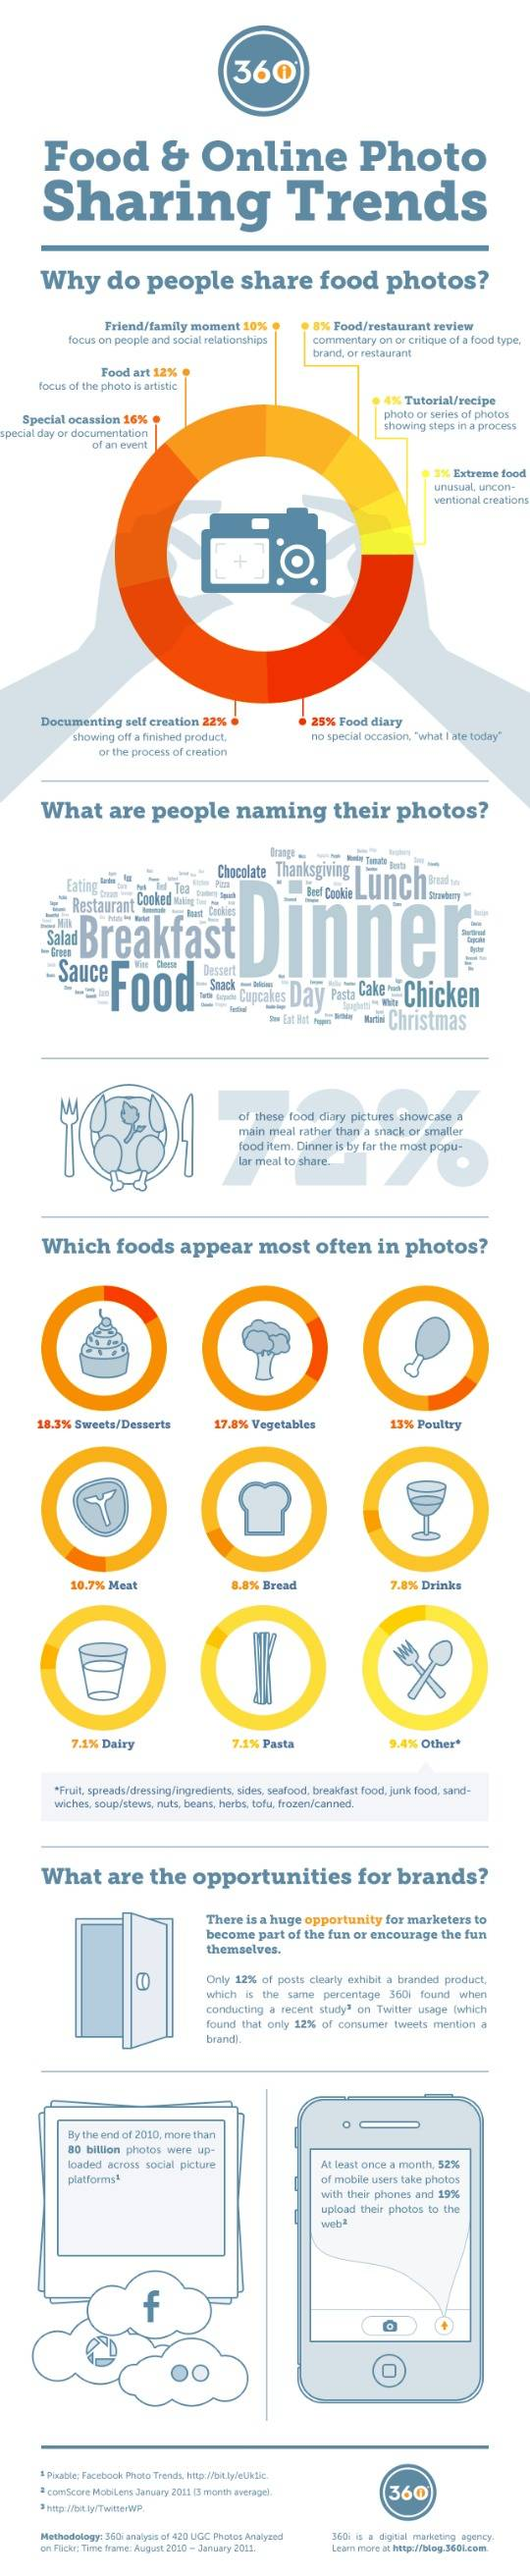 17 Enticing Food Picture Sharing Trends and Statistics